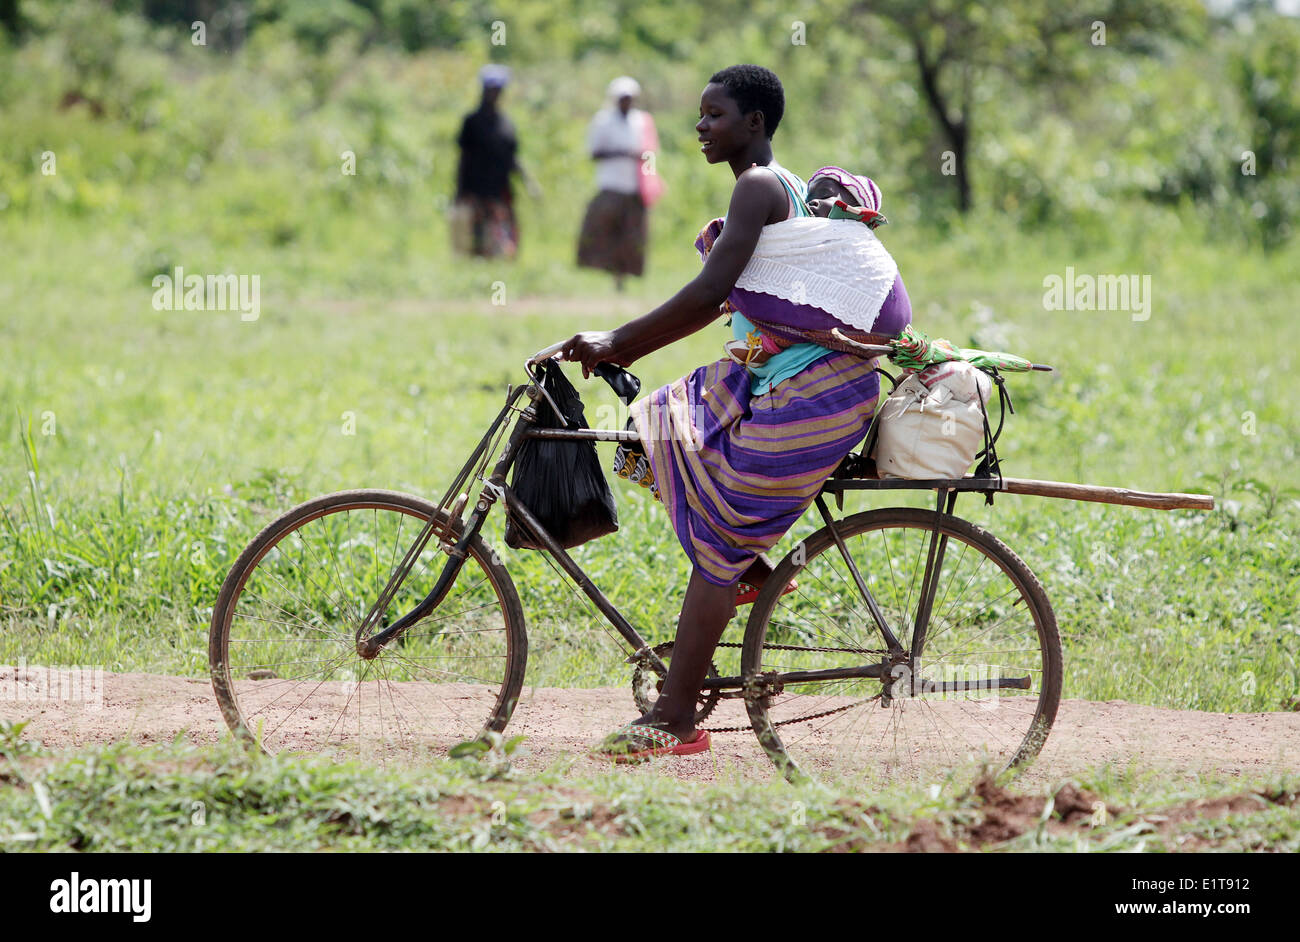 Une mère et son bébé dans un cycle de la partie rurale du district de Lira le nord de l'Ouganda. Photo Stock